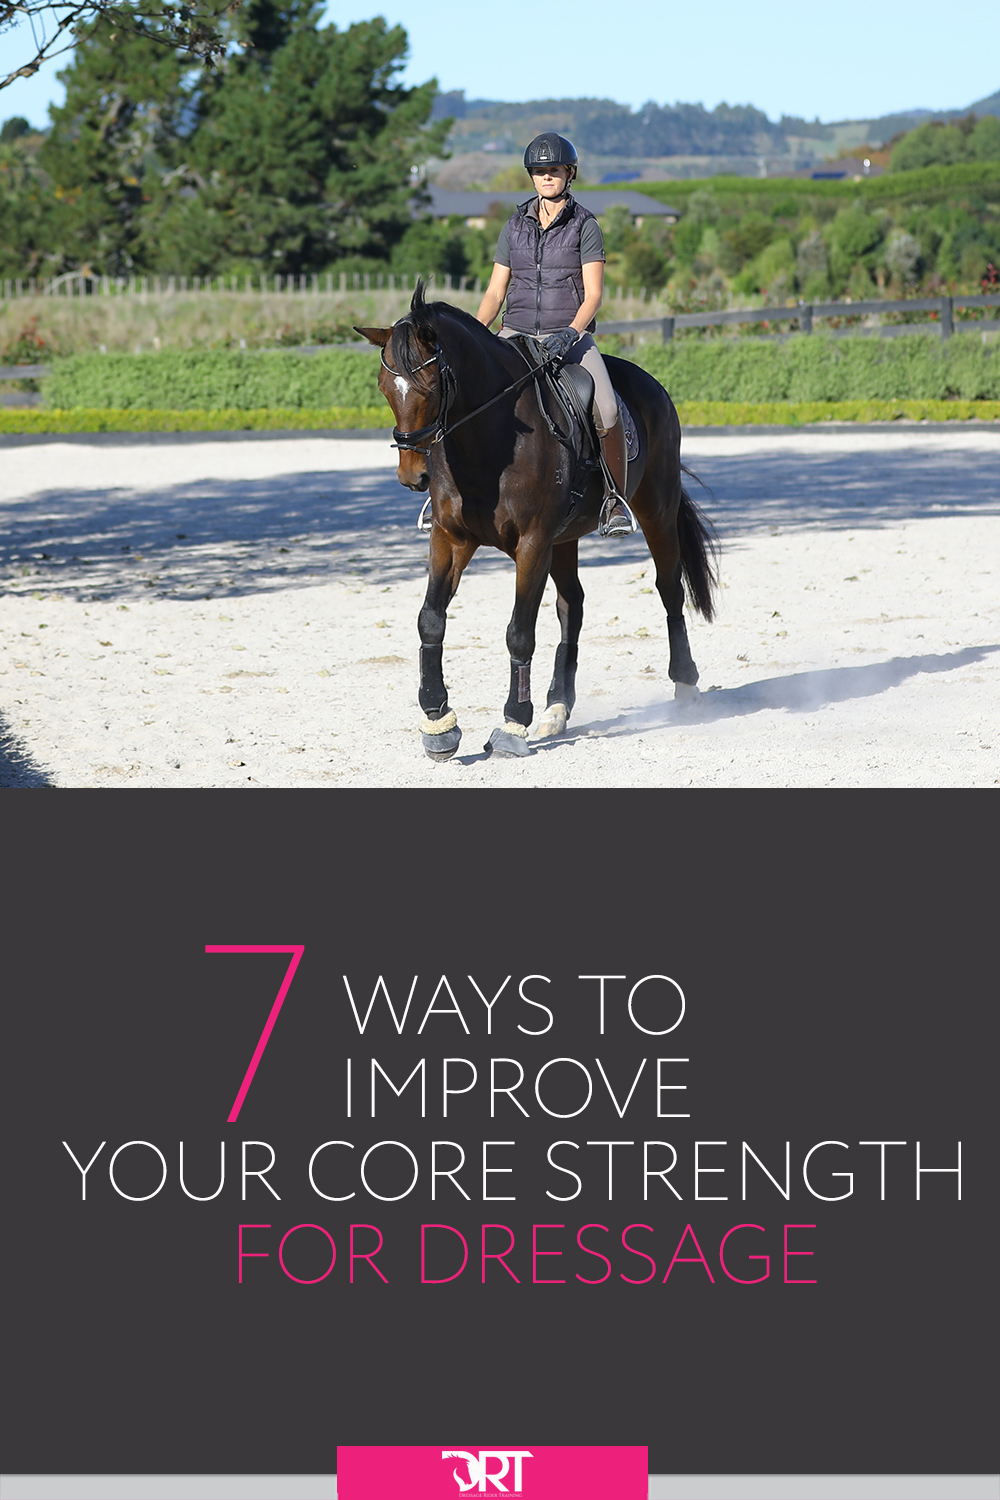 Here are 7 great exercises to help improve your core strength for dressage.   #dressage #dressagetraining #dressagerider #dressageexercises